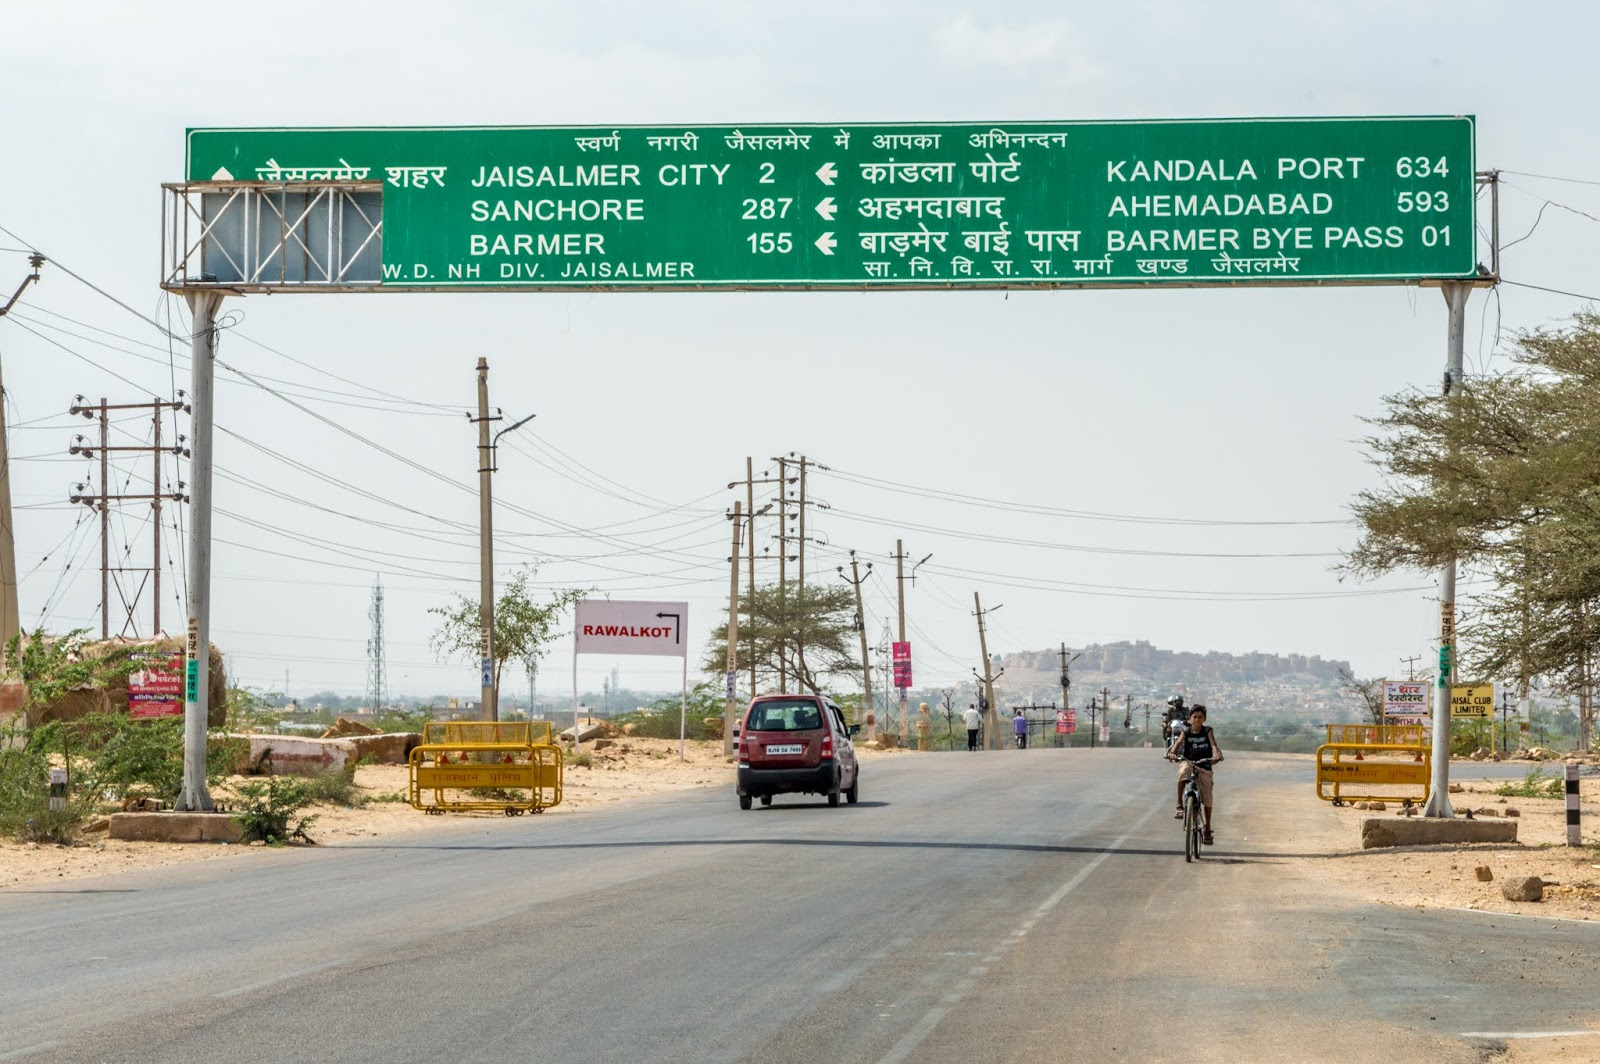 Board at the entrance of Jaisalmer. The fort is visible in the middle.